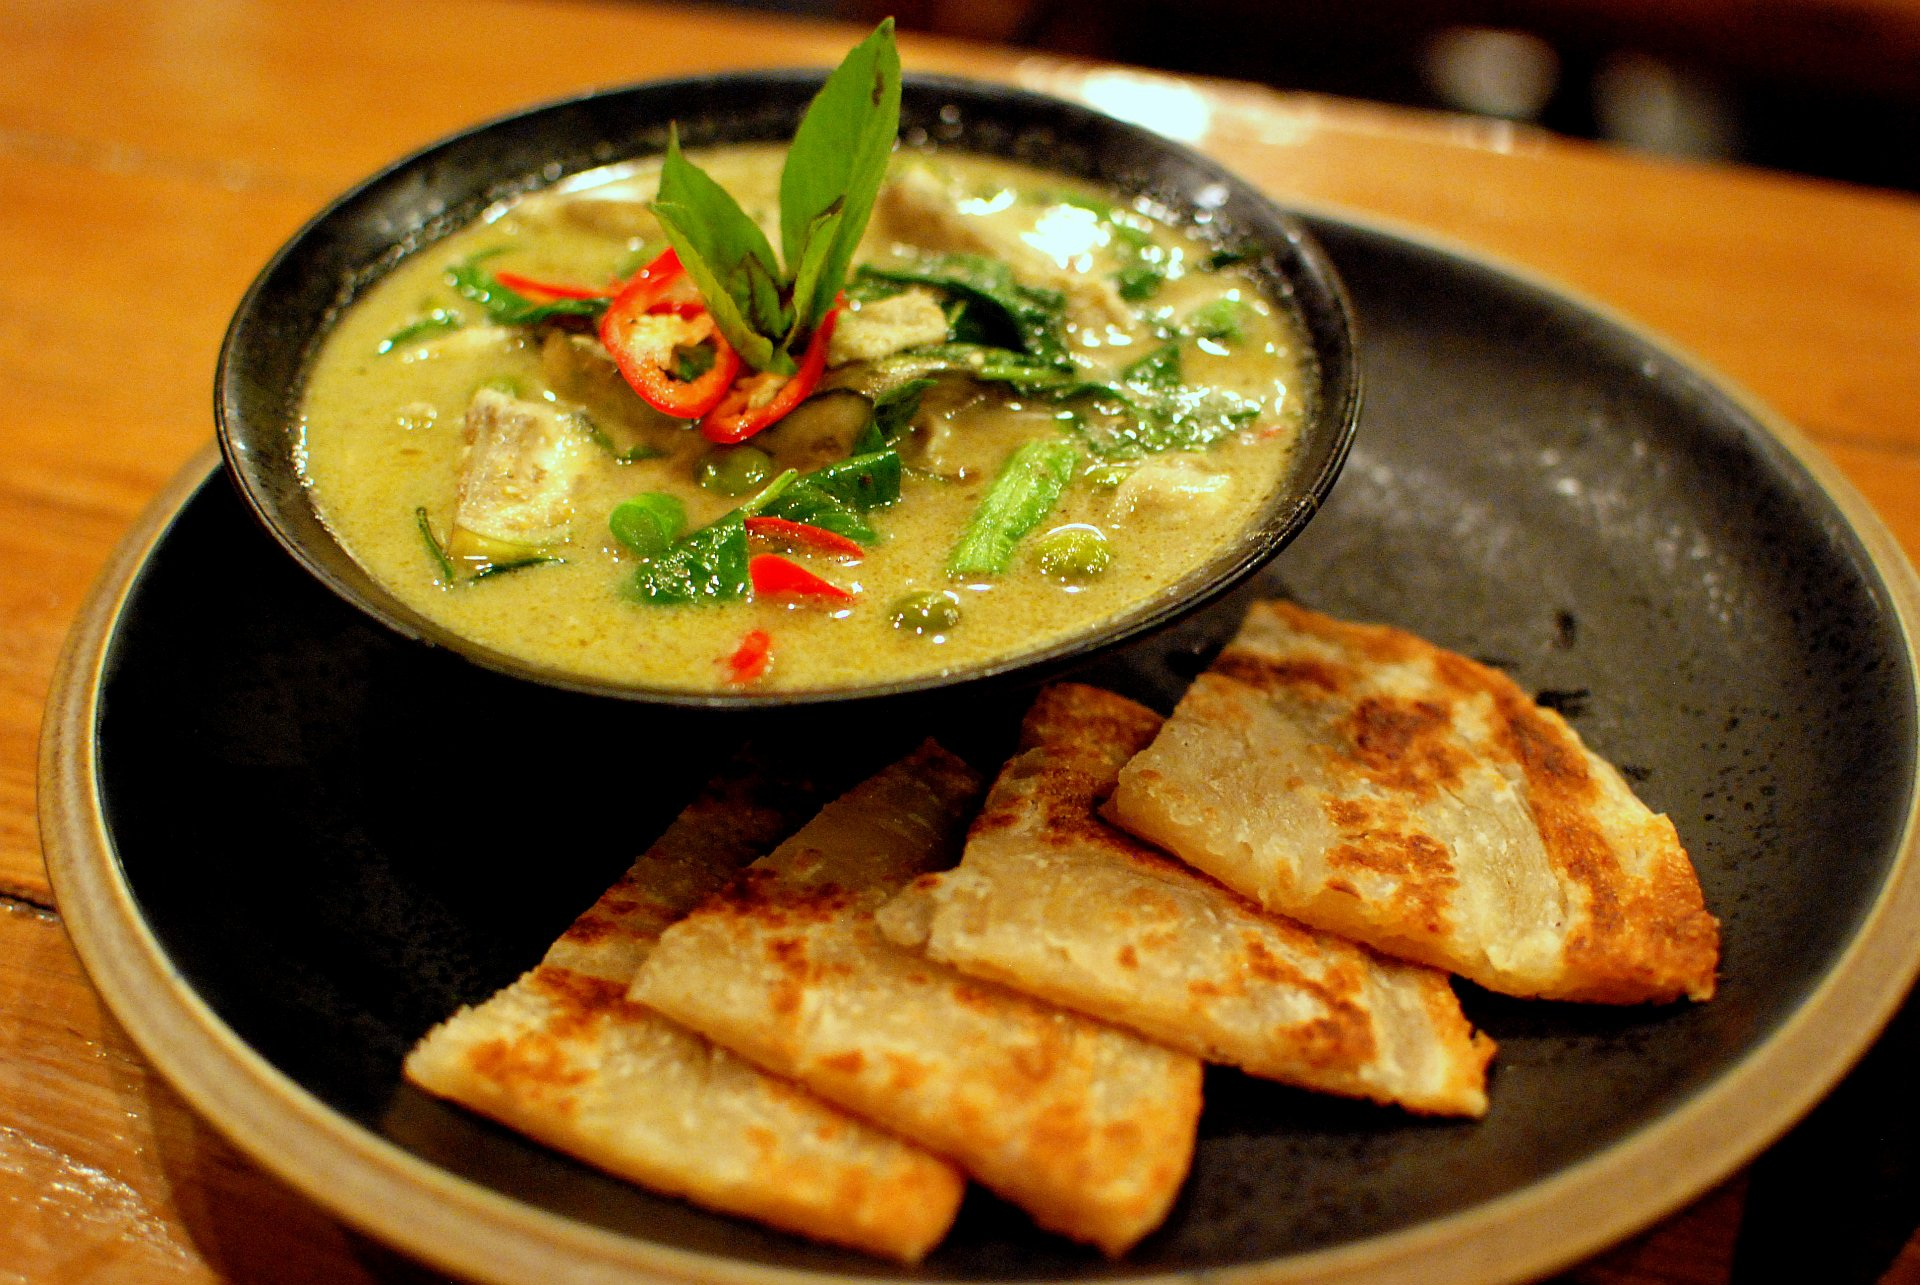 File:Thai green chicken curry and roti.jpg - Wikipedia, the free ...